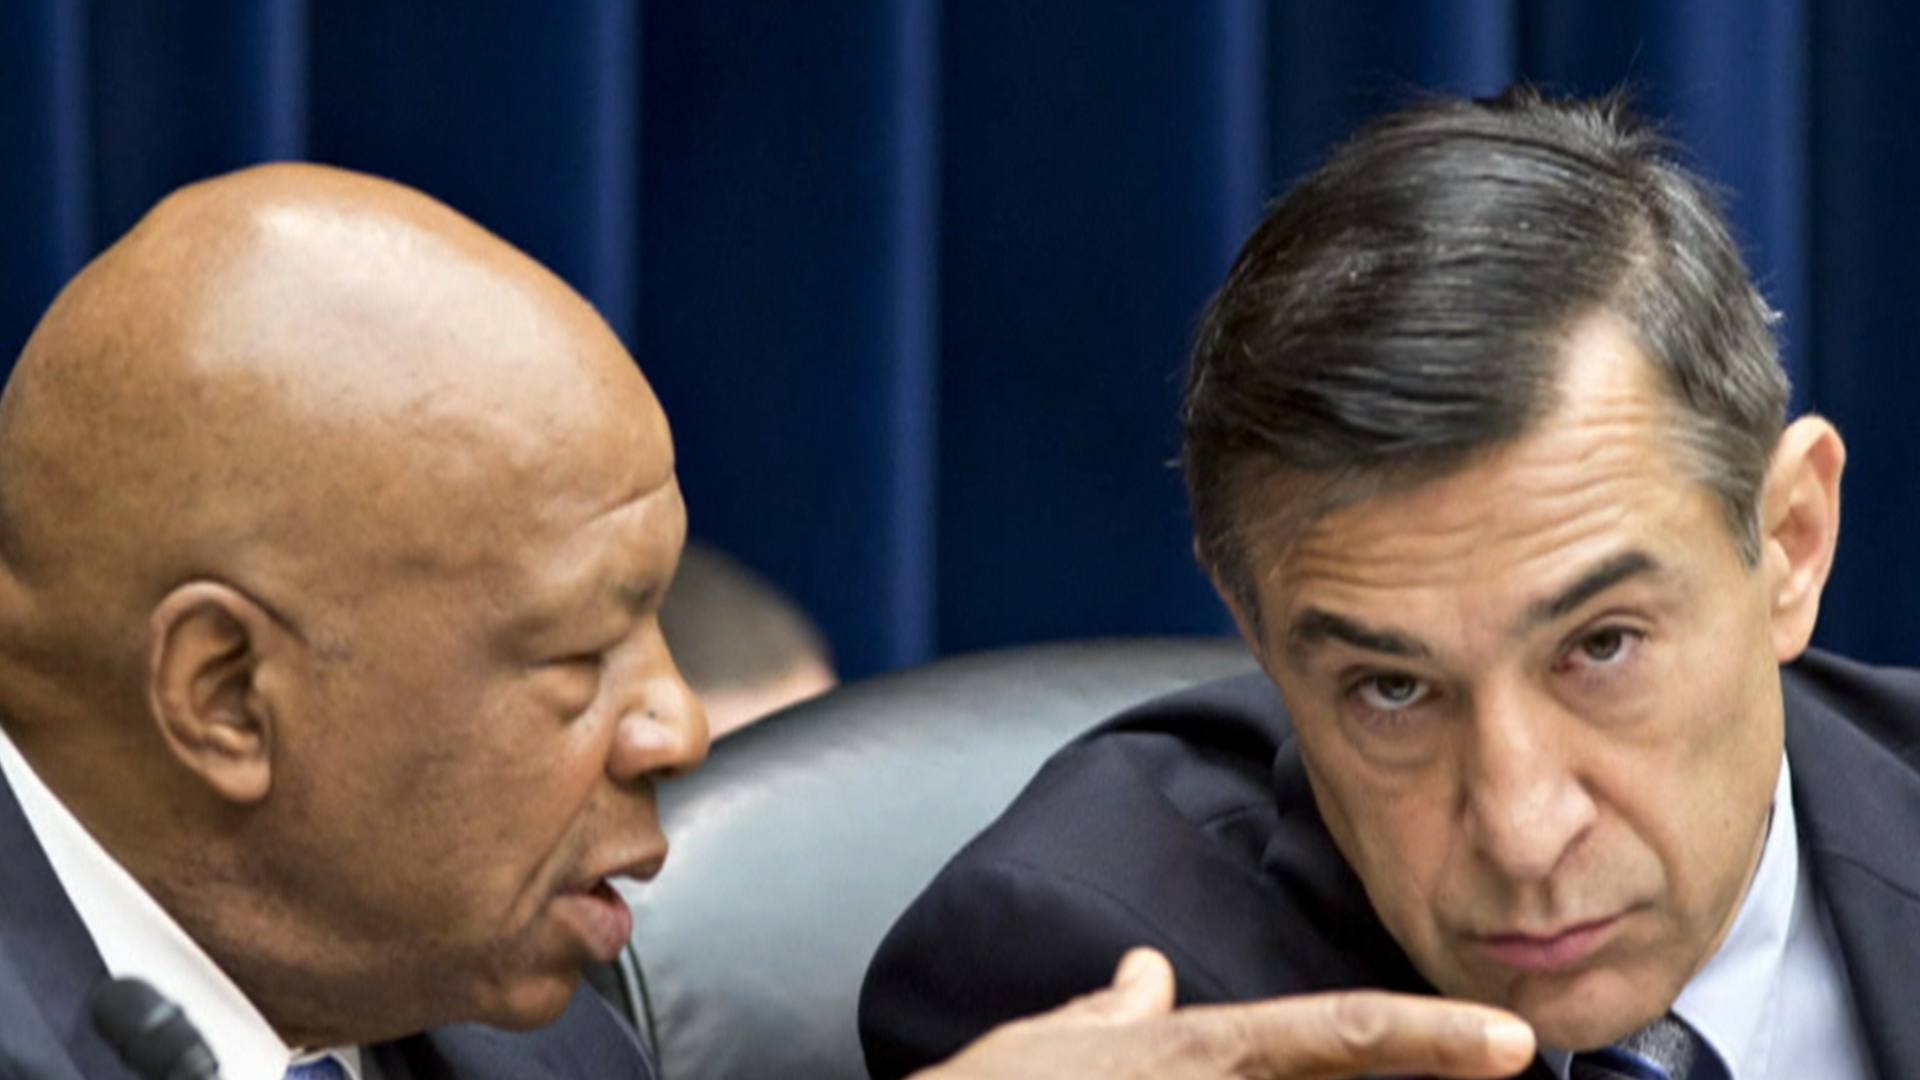 The Issa man obstructeth